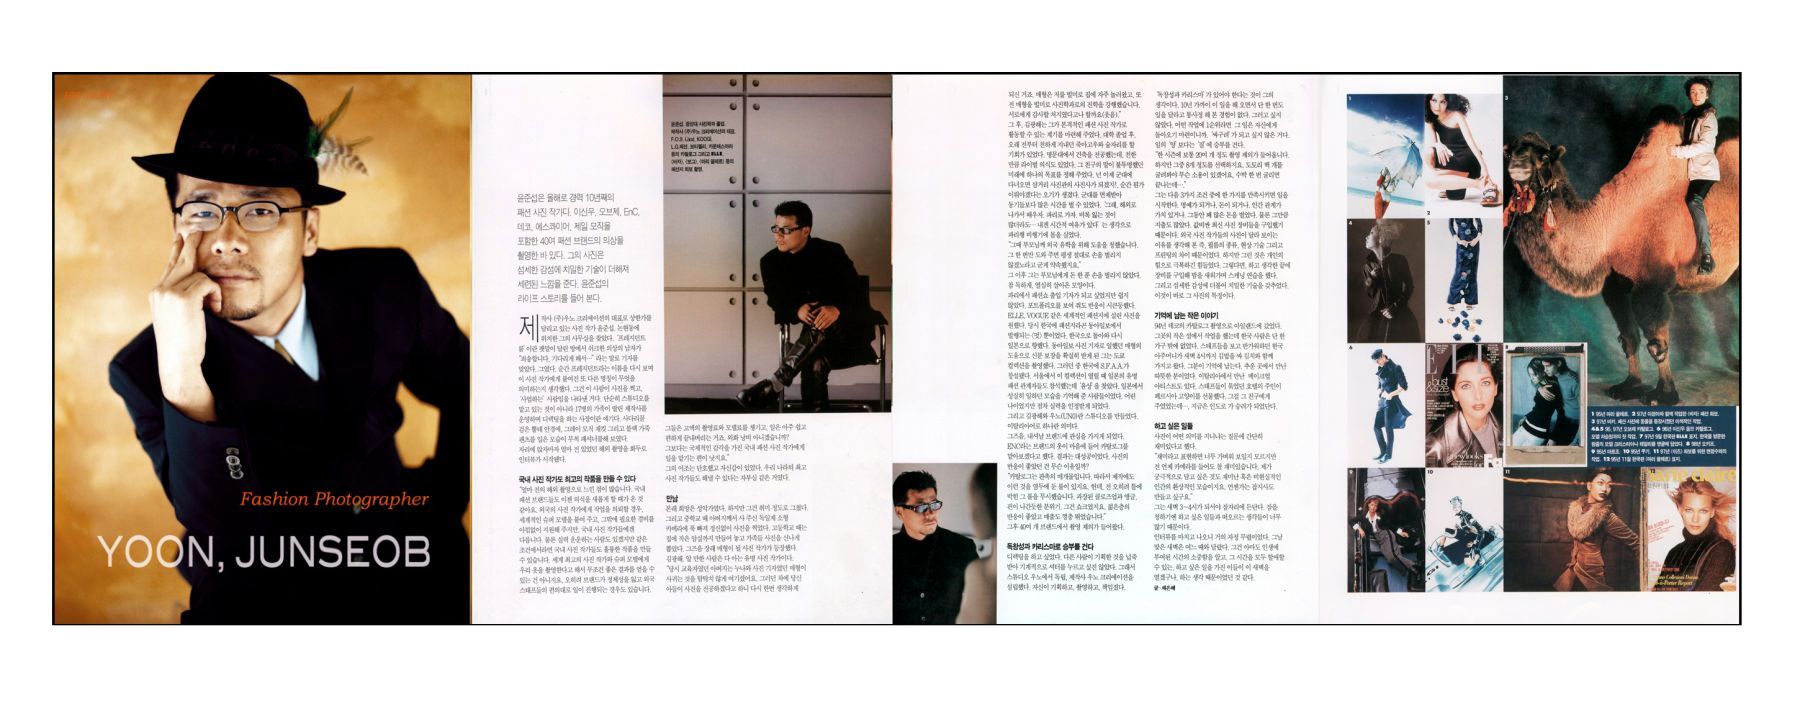 1interview_1